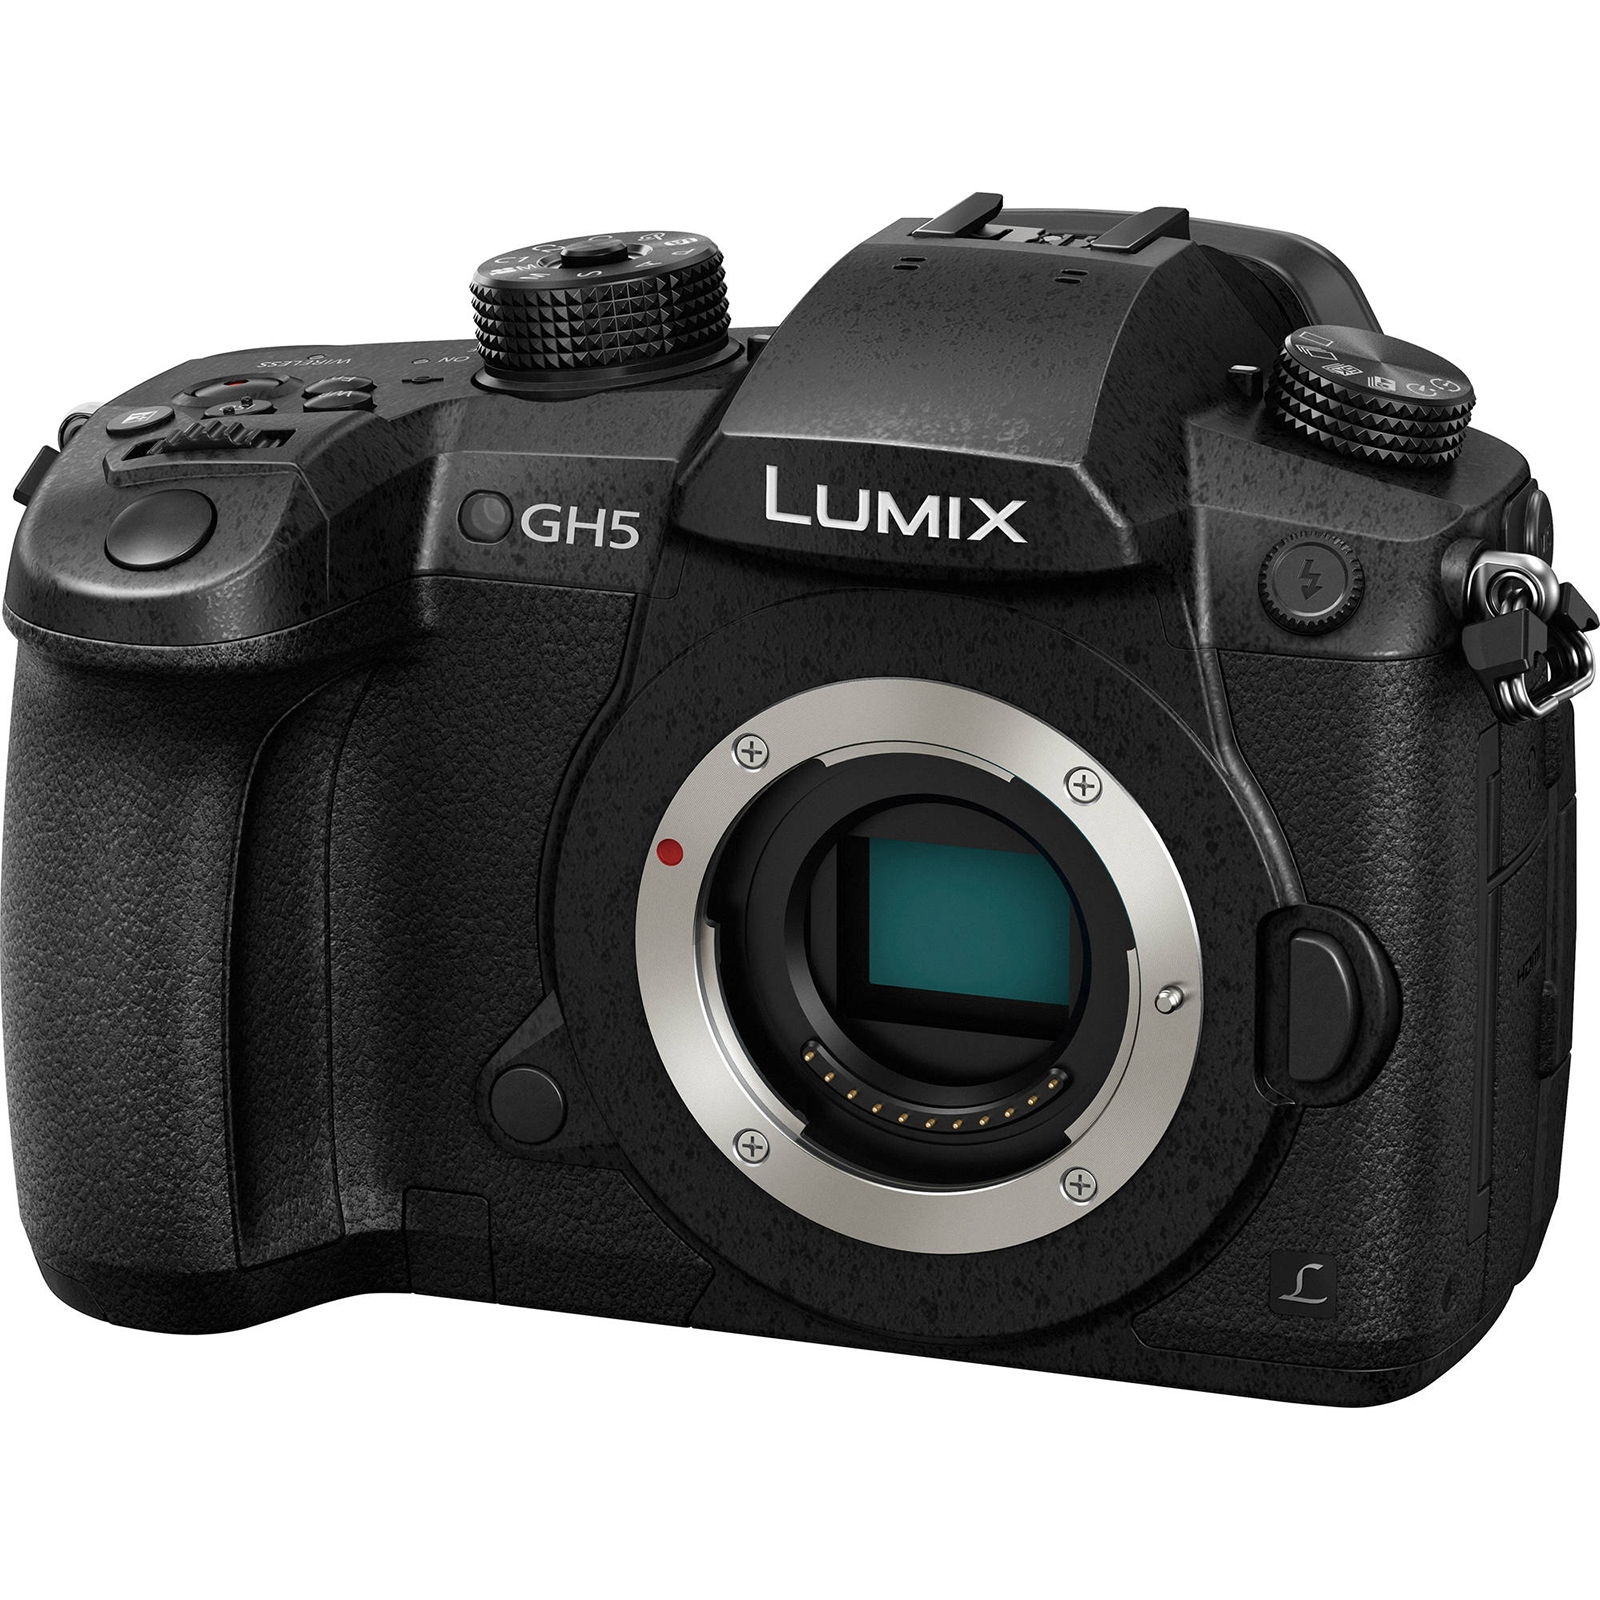 Panasonic Lumix DC-GH5 Wi-Fi 4K Digital Camera Body